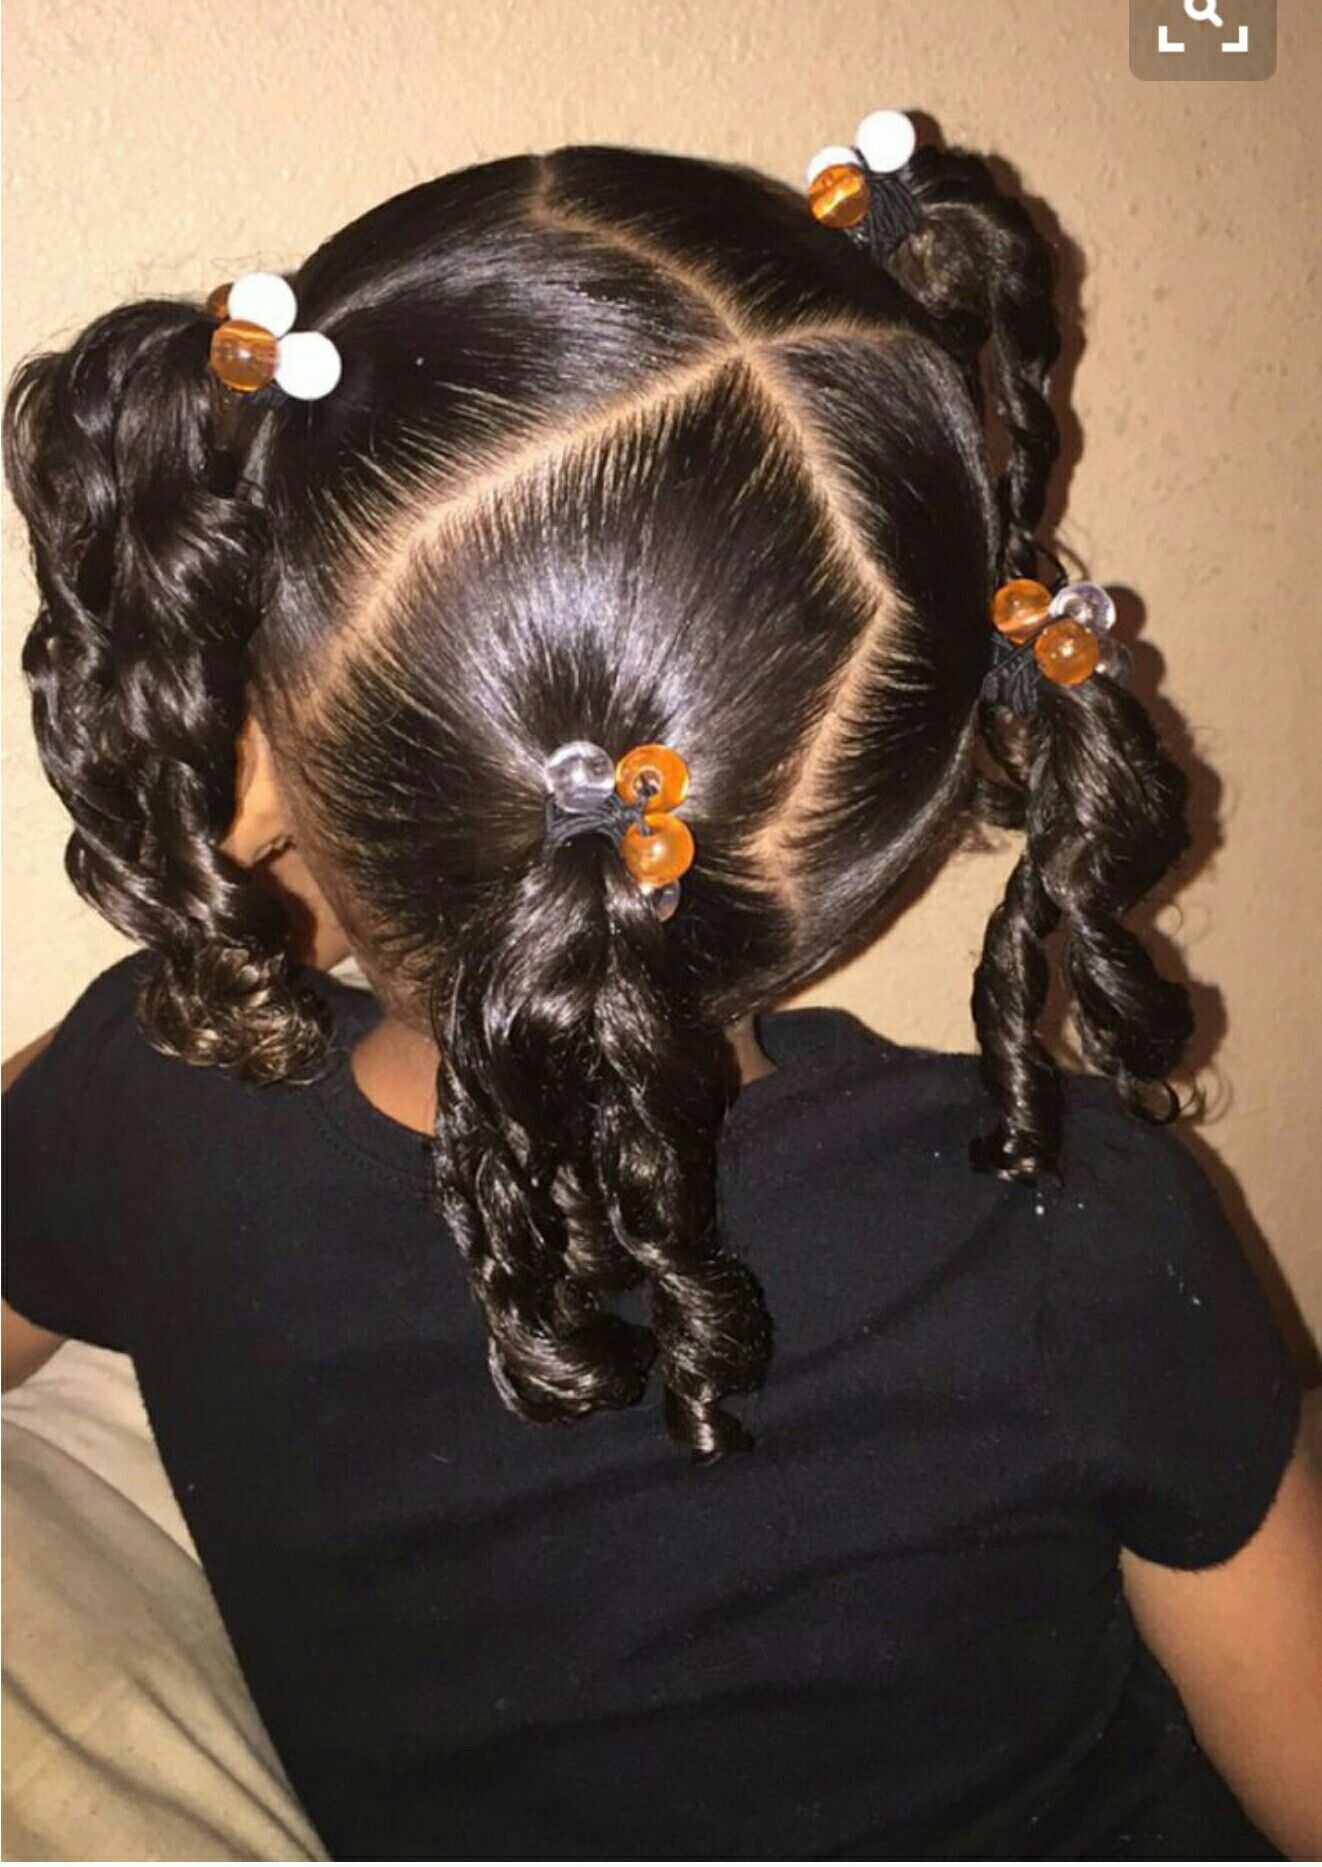 Cute hairstyles for kids hairstyleforblackwomen.net 181